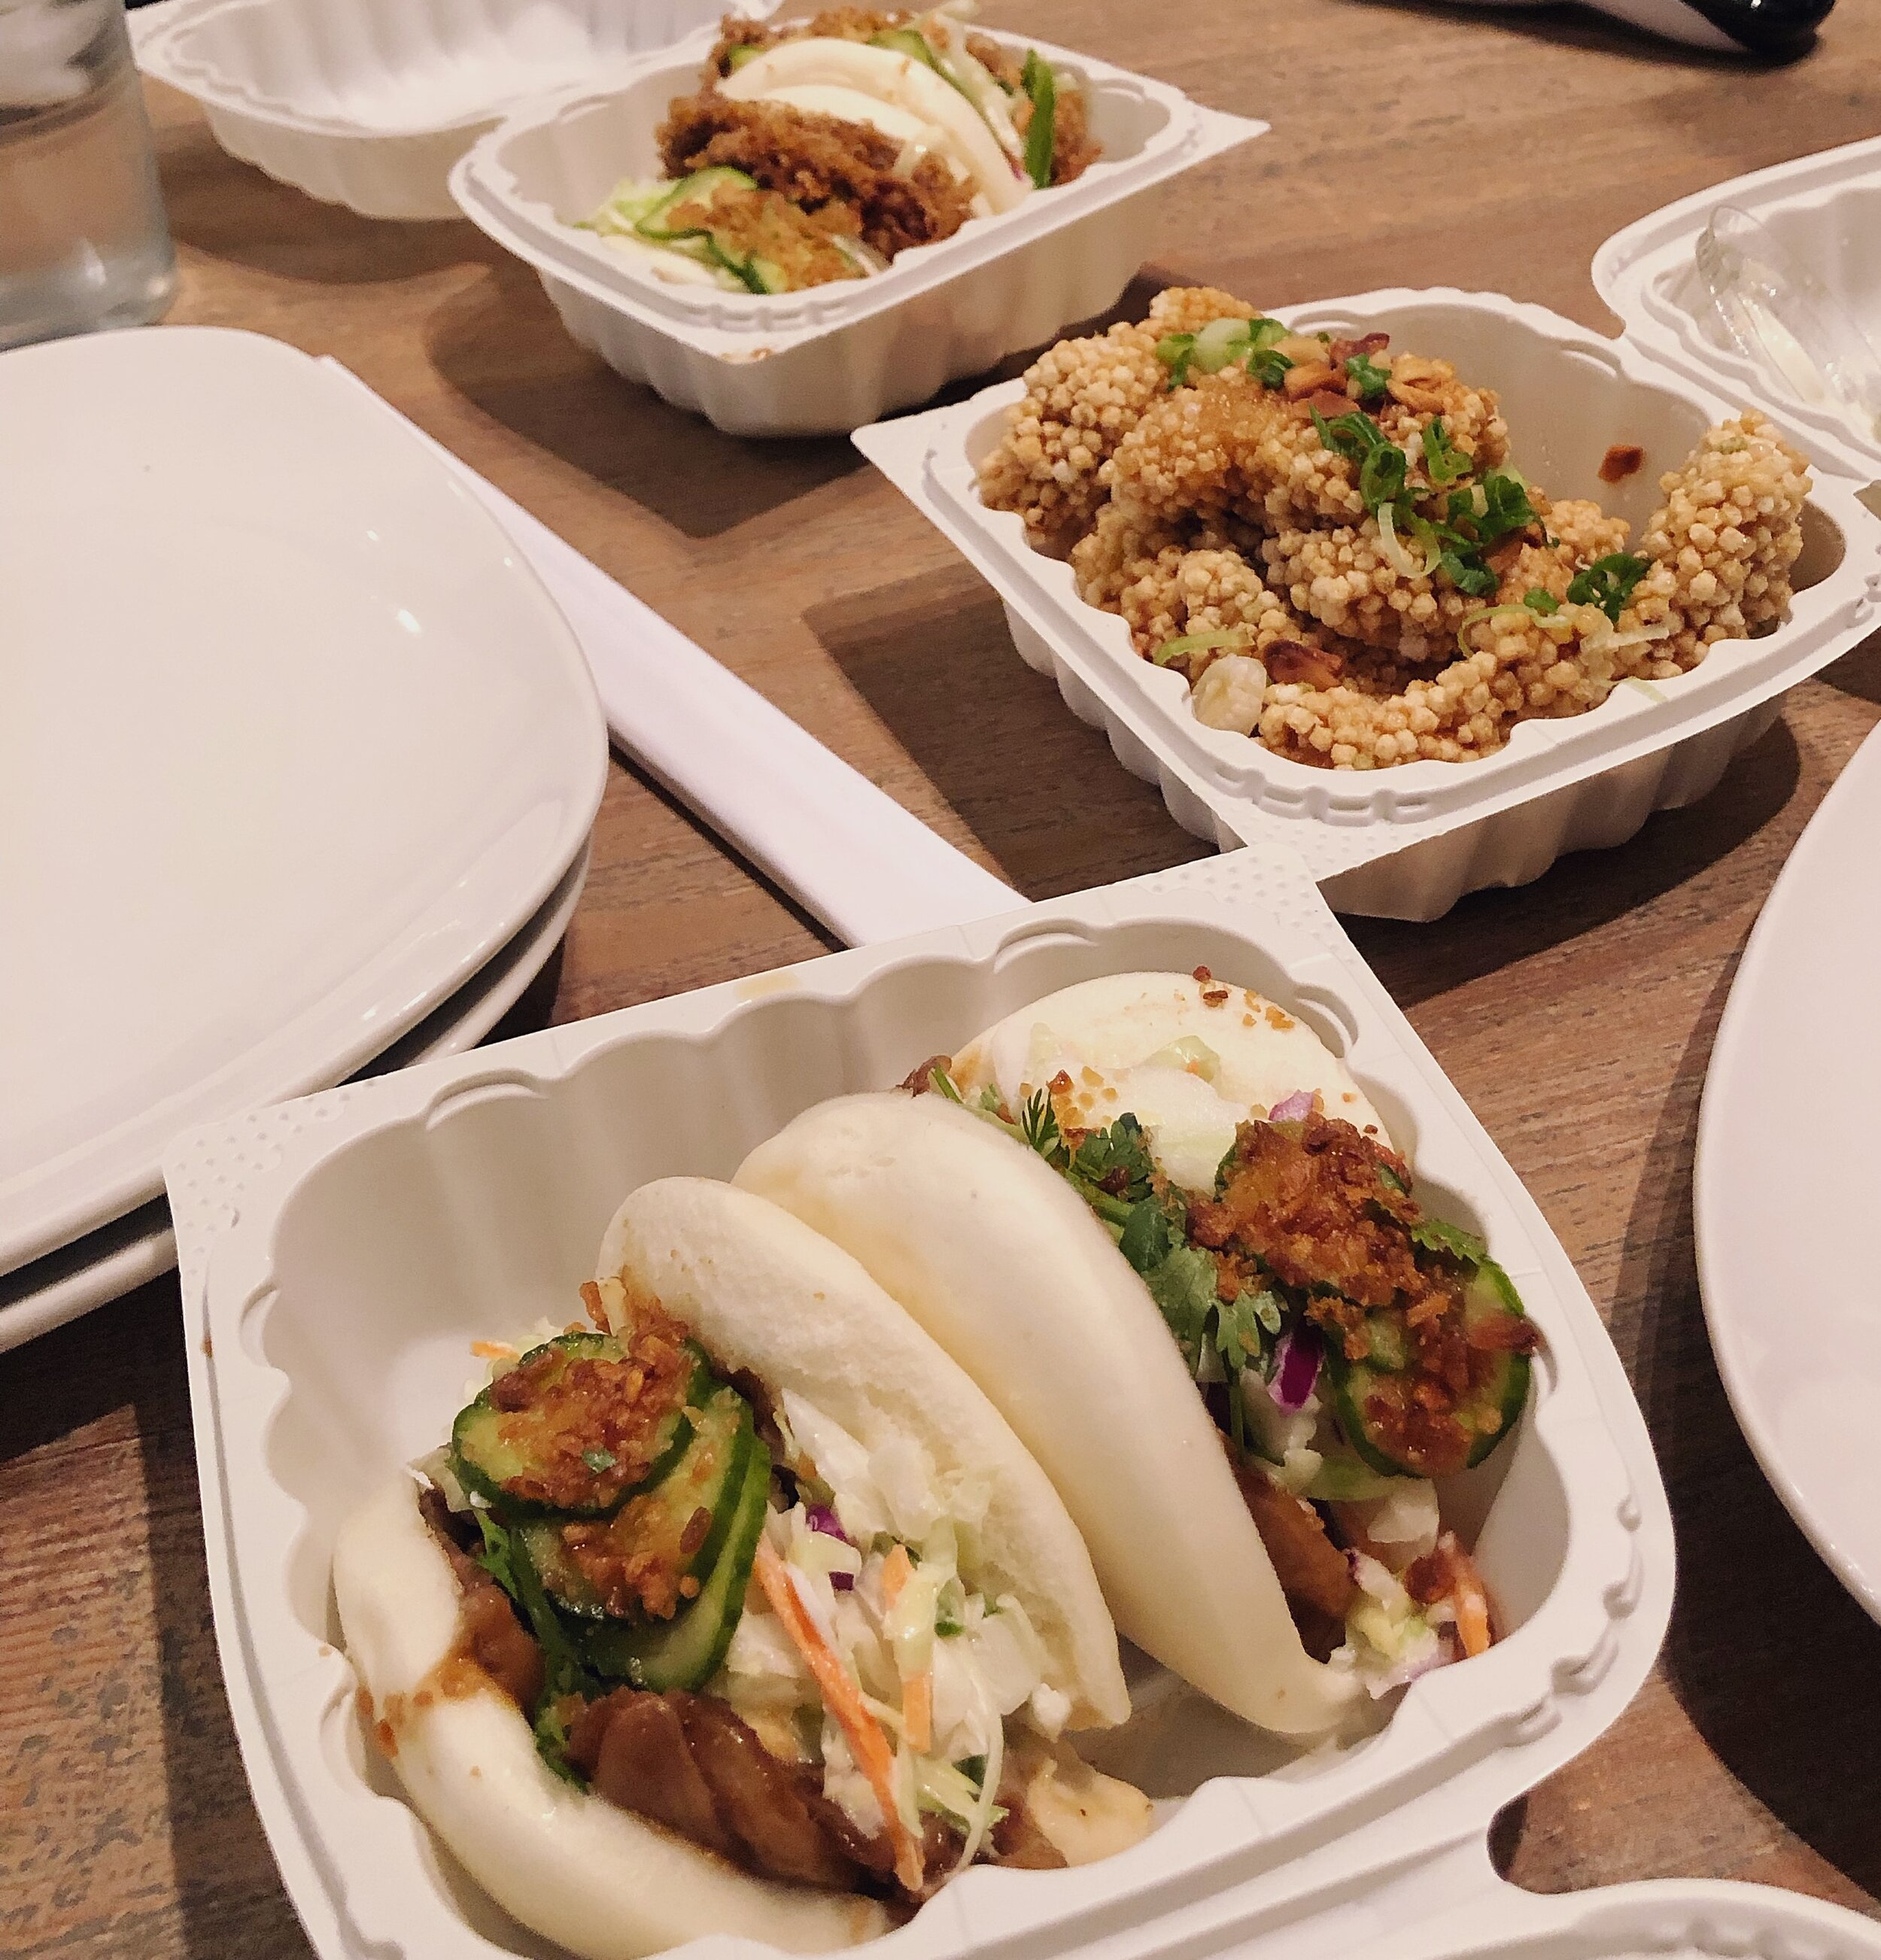 For our order-in night, we went with  Harumama Noodles and Buns . We ordered the pork belly and eggplant bao bao buns, karaage and a bowl of ramen. They have the cute character buns too! I ordered the snoopy ones (catch them cuties on my IG highlight reel), which were filled with a red bean paste.